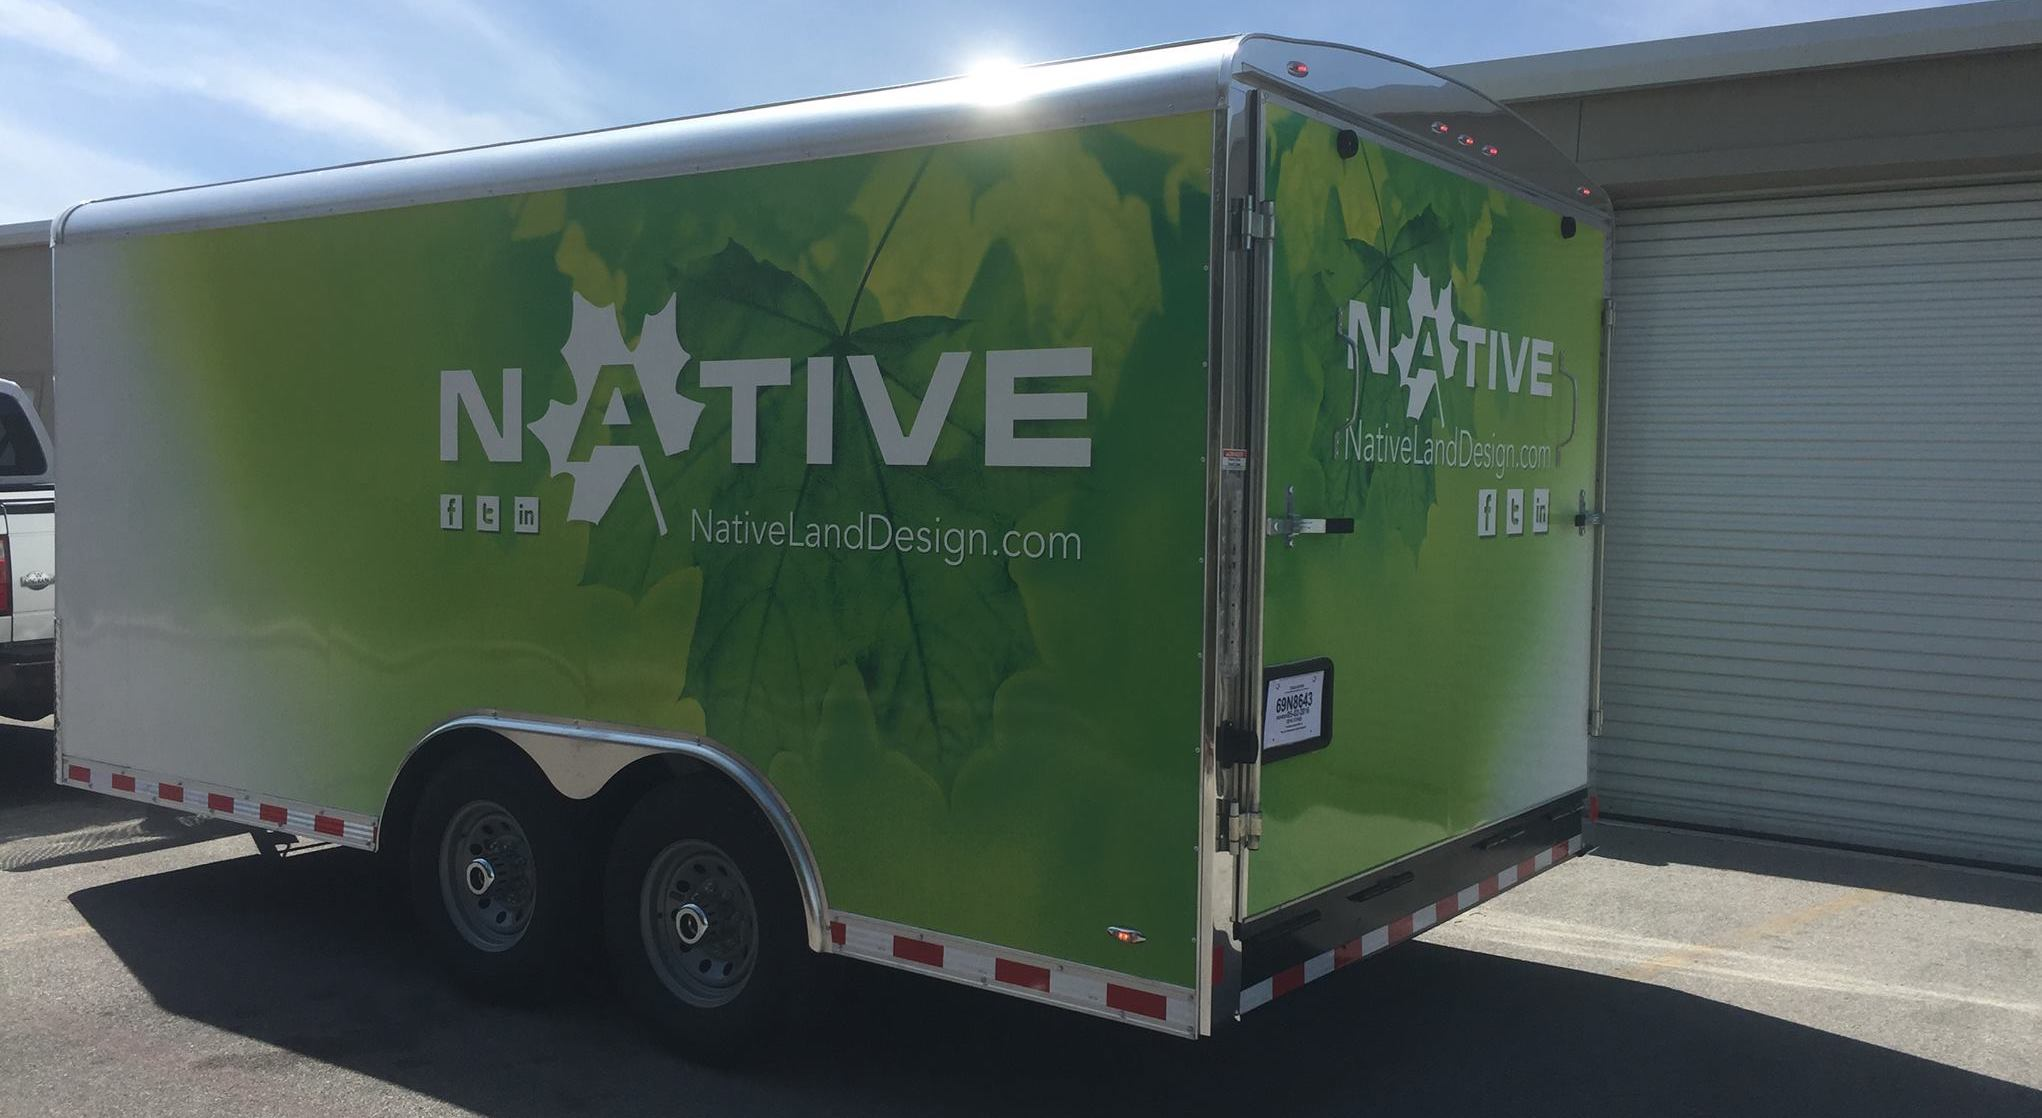 Wrapping landscaping and mowing trailers will get your company great exposure.